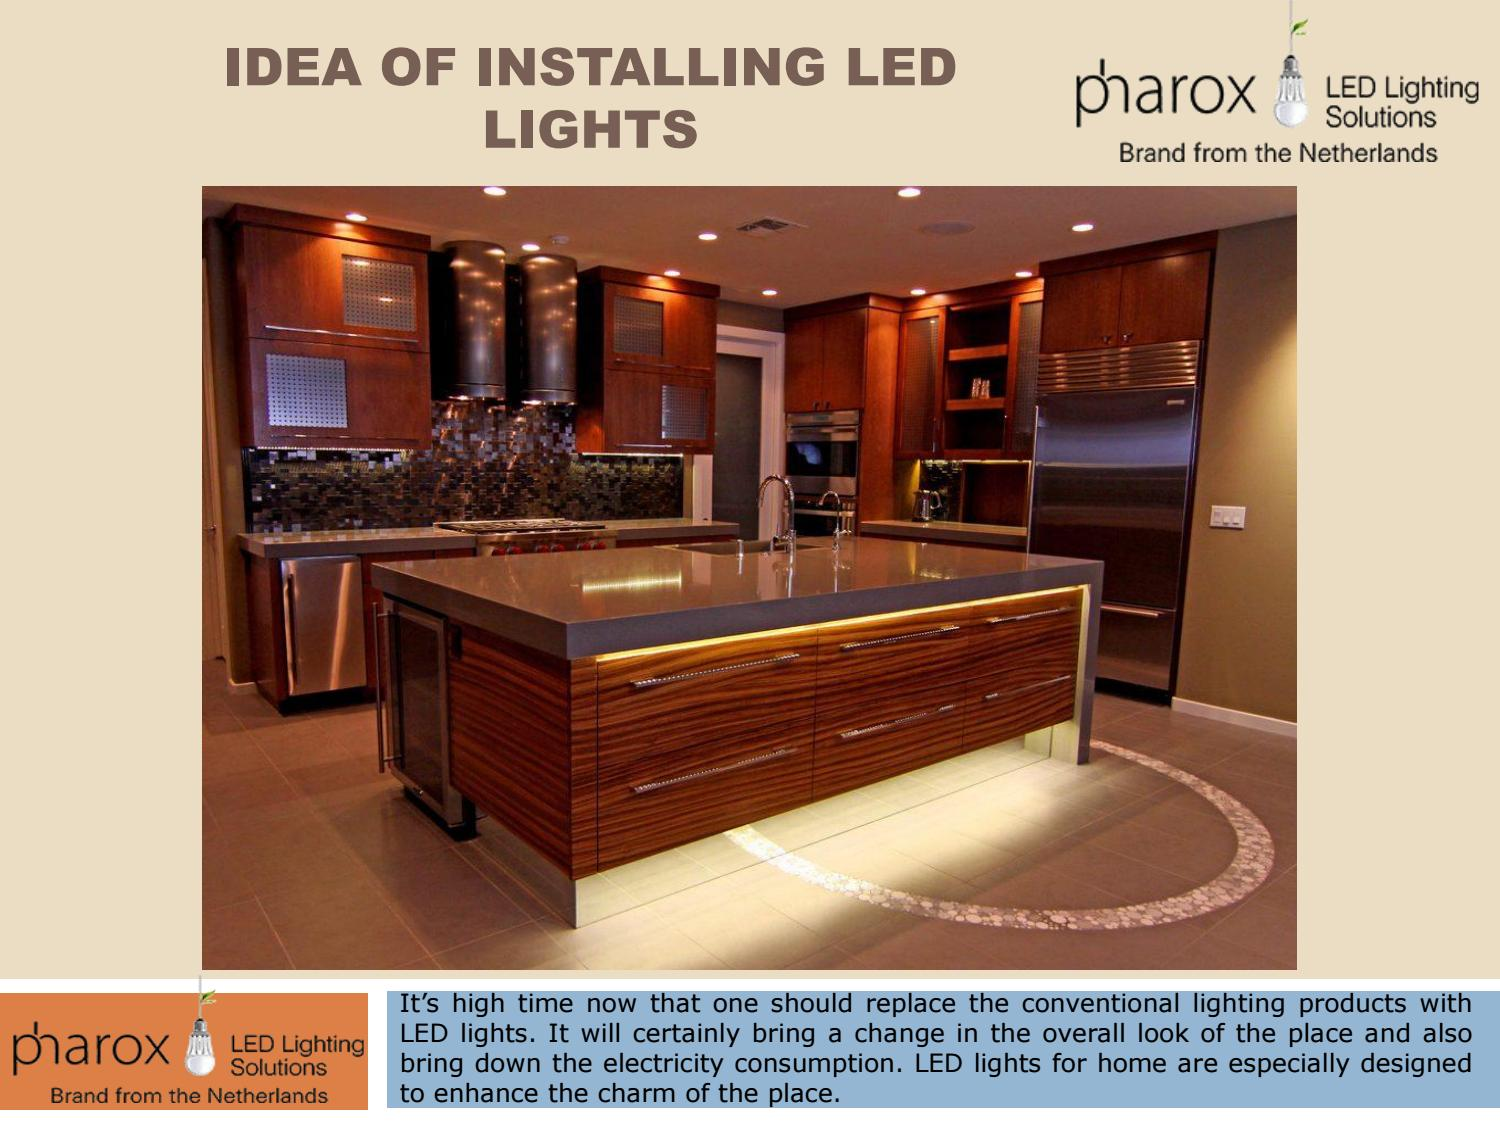 Creative Ideas To Install Led Lights By Pharox Lighting Issuu Wiring In A Home